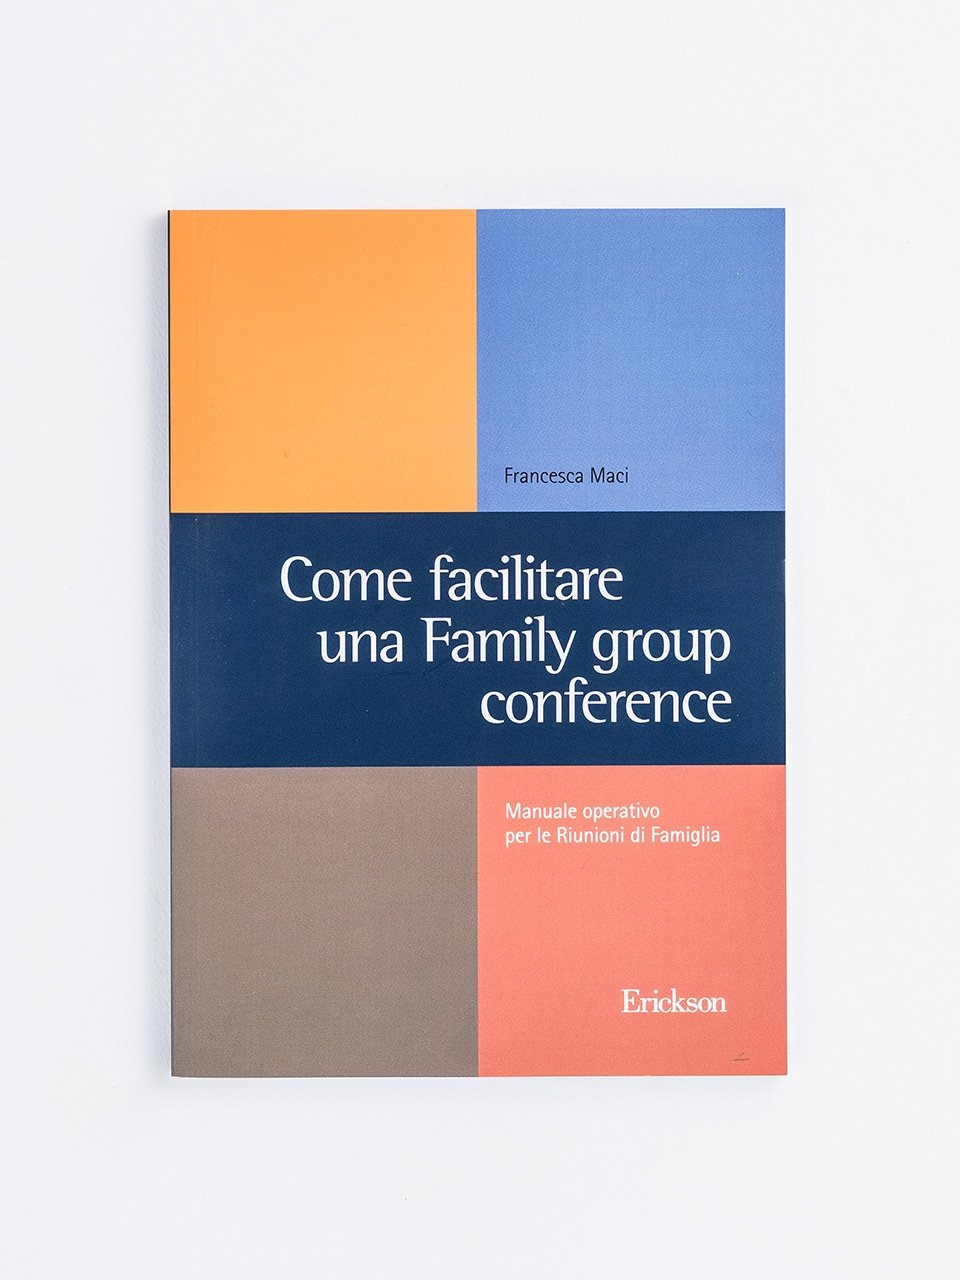 Come facilitare una Family group conference - La linea del 20 - Versione per non vedenti e sordo - Libri - Erickson